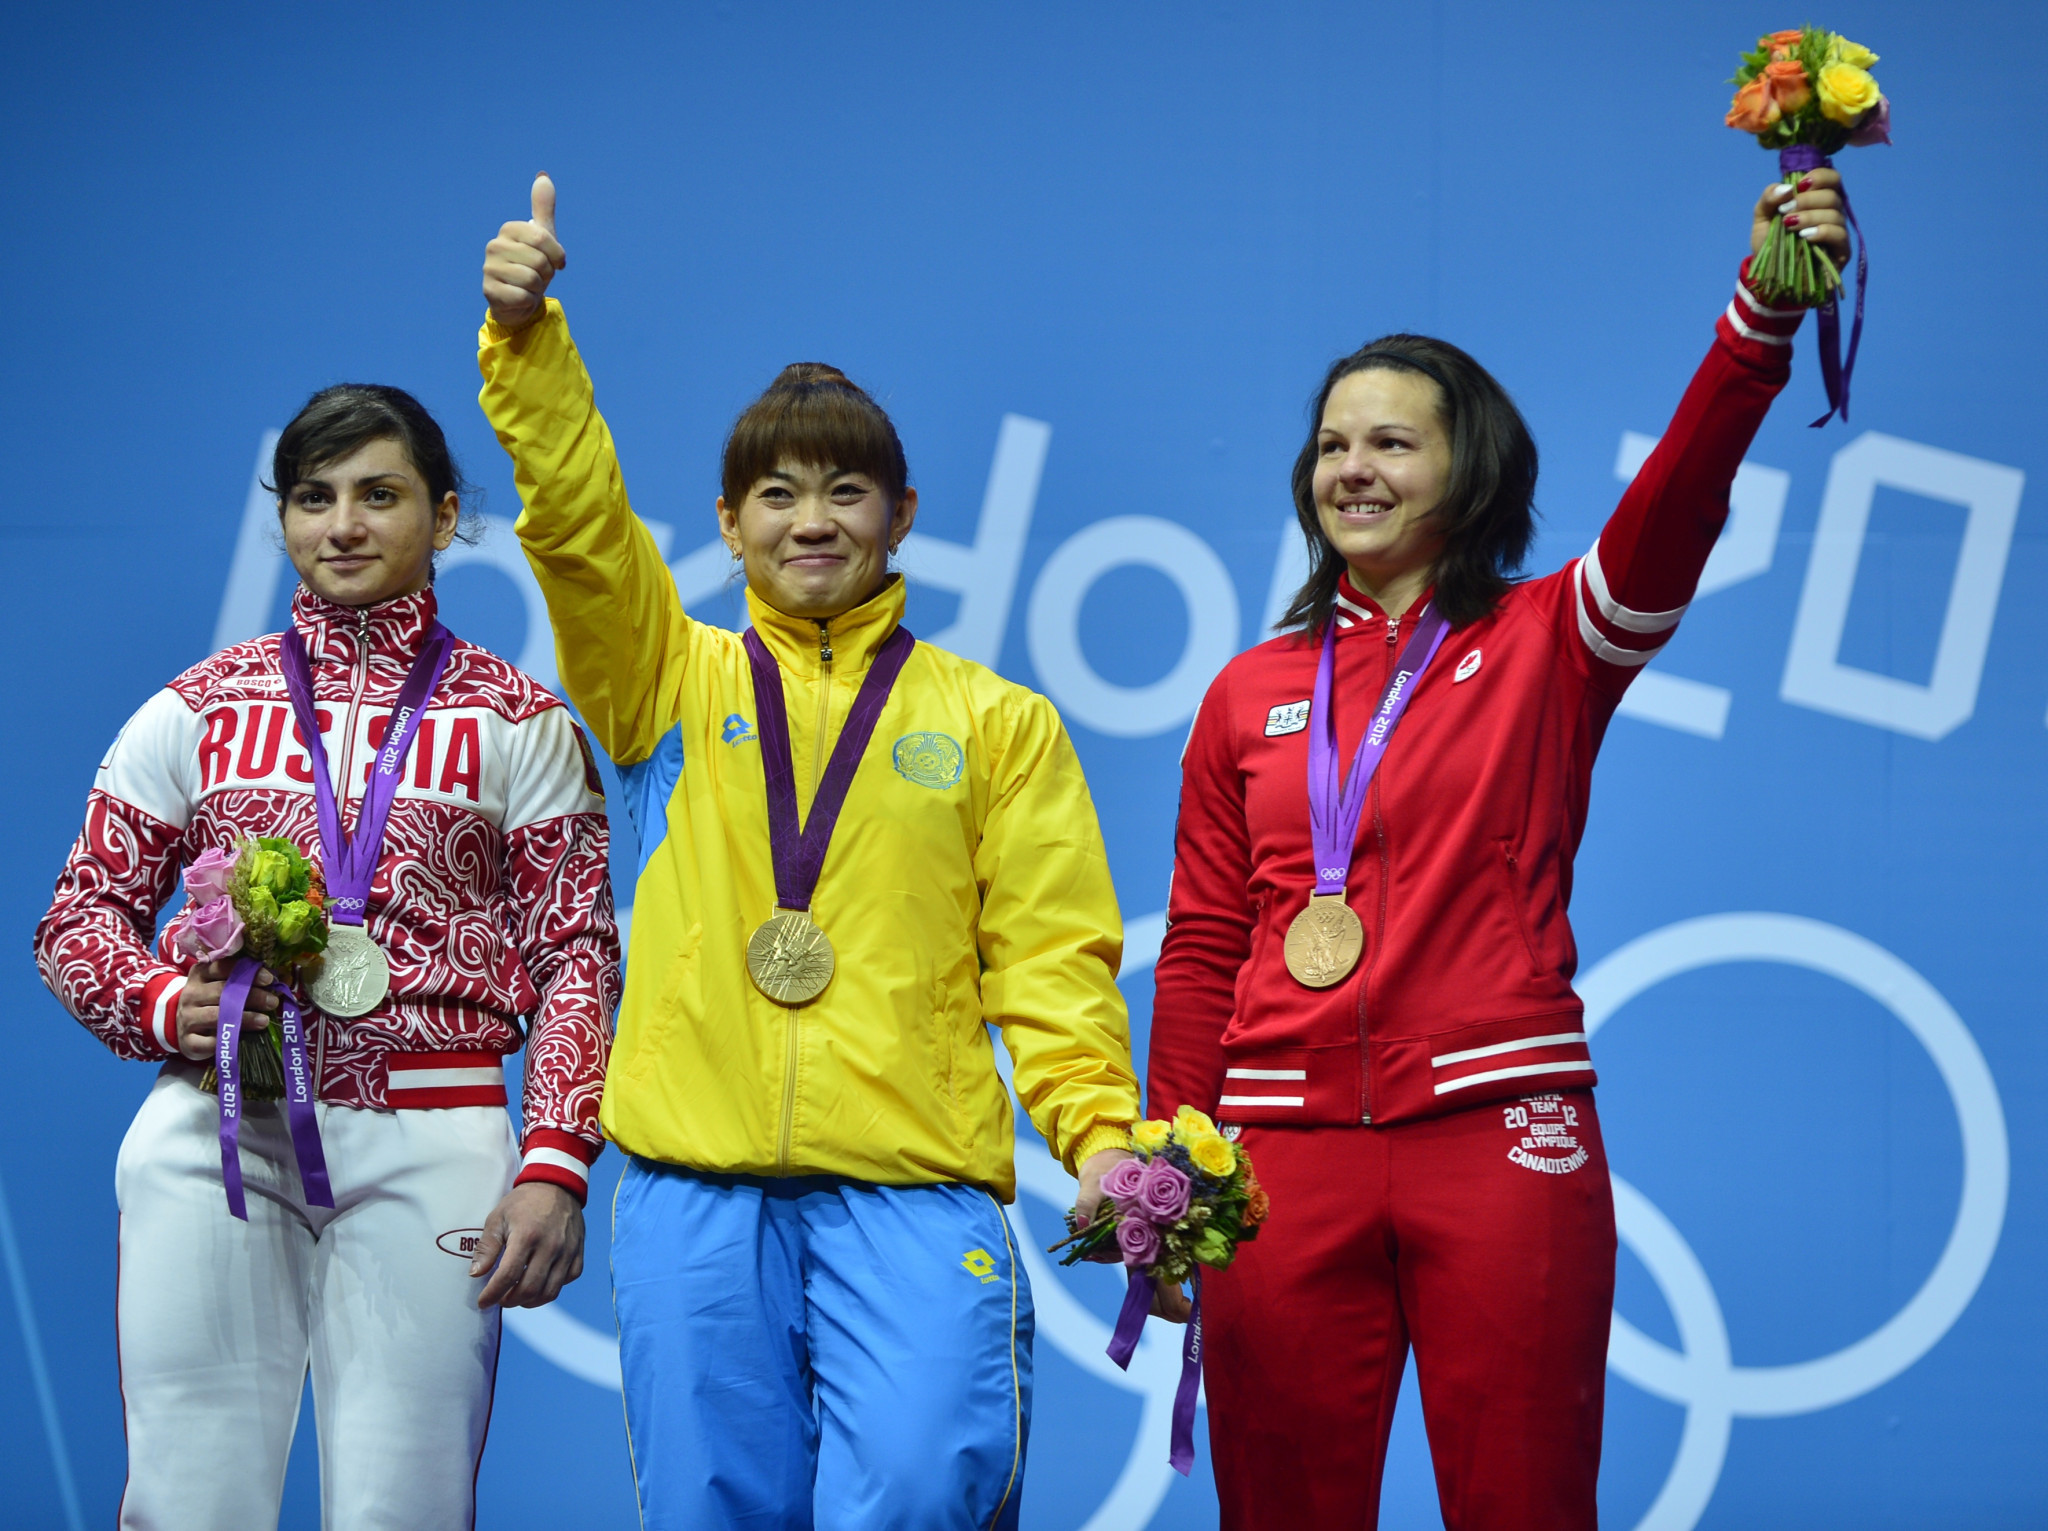 Christine Girard, right, originally finished behind Kazakhstan's Maiya Maneza, centre, and Russia's Svetlana Tsarukayeva, left, at London 2012, but they were both disqualified for doping ©Getty Images